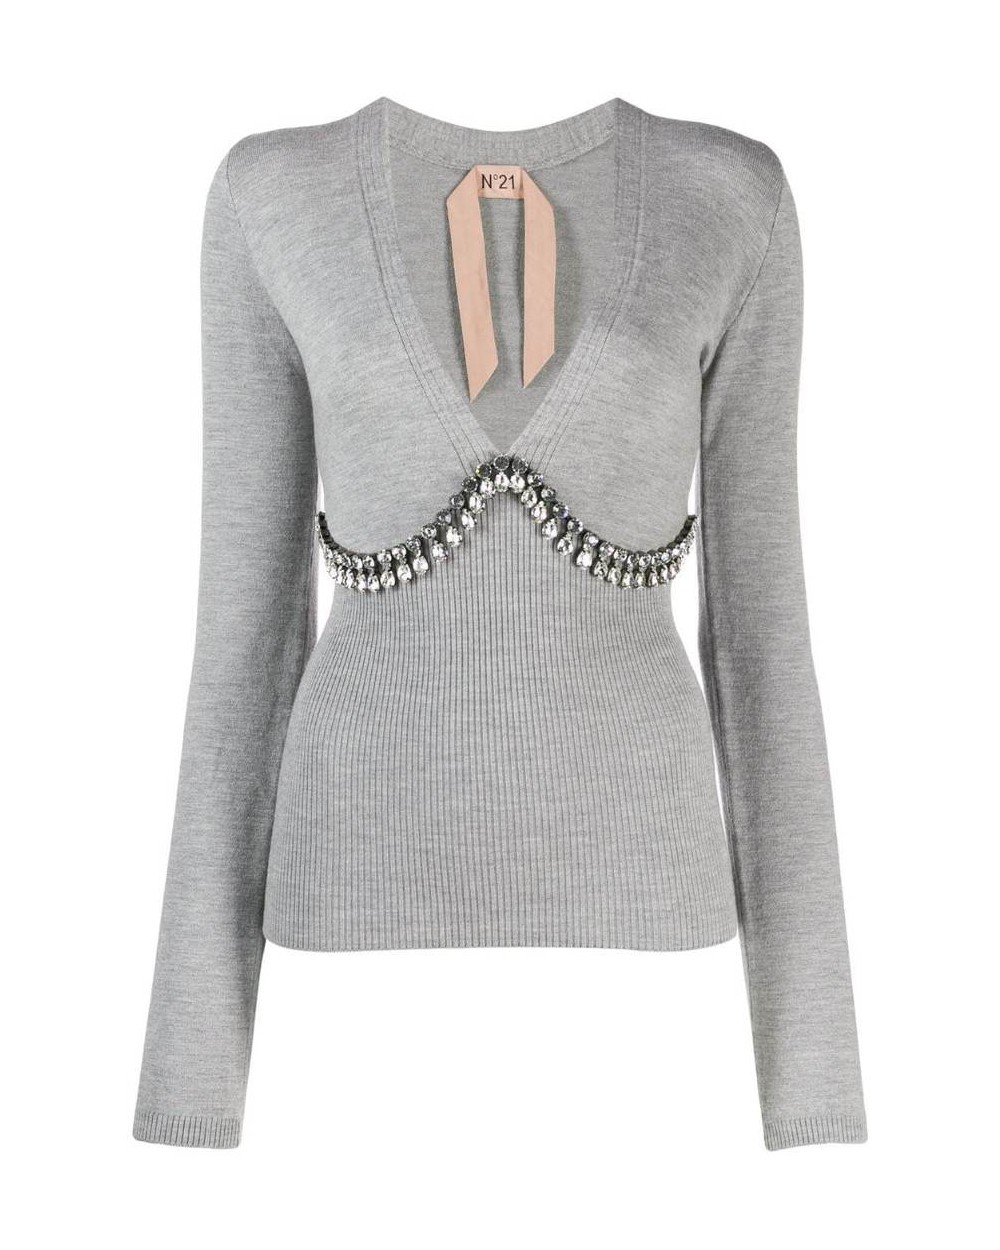 JERSEY Nº21 STRASS Talla 42 Color GRIS